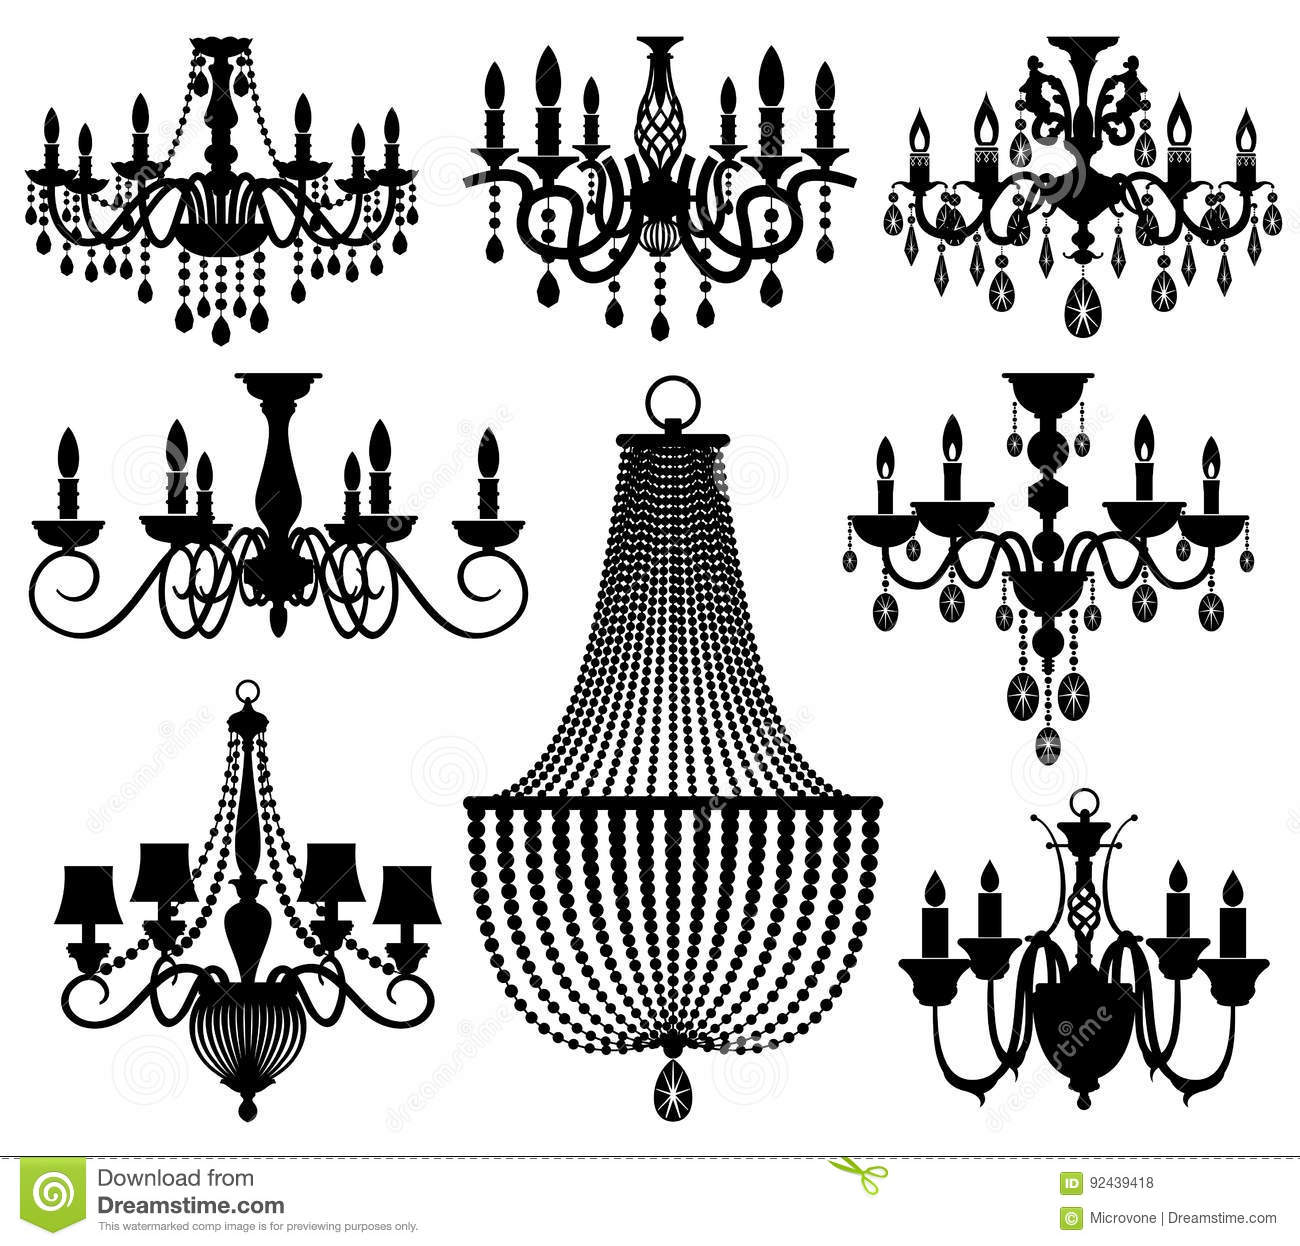 Vintage Crystal Chandeliers Vector Silhouettes Isolated On